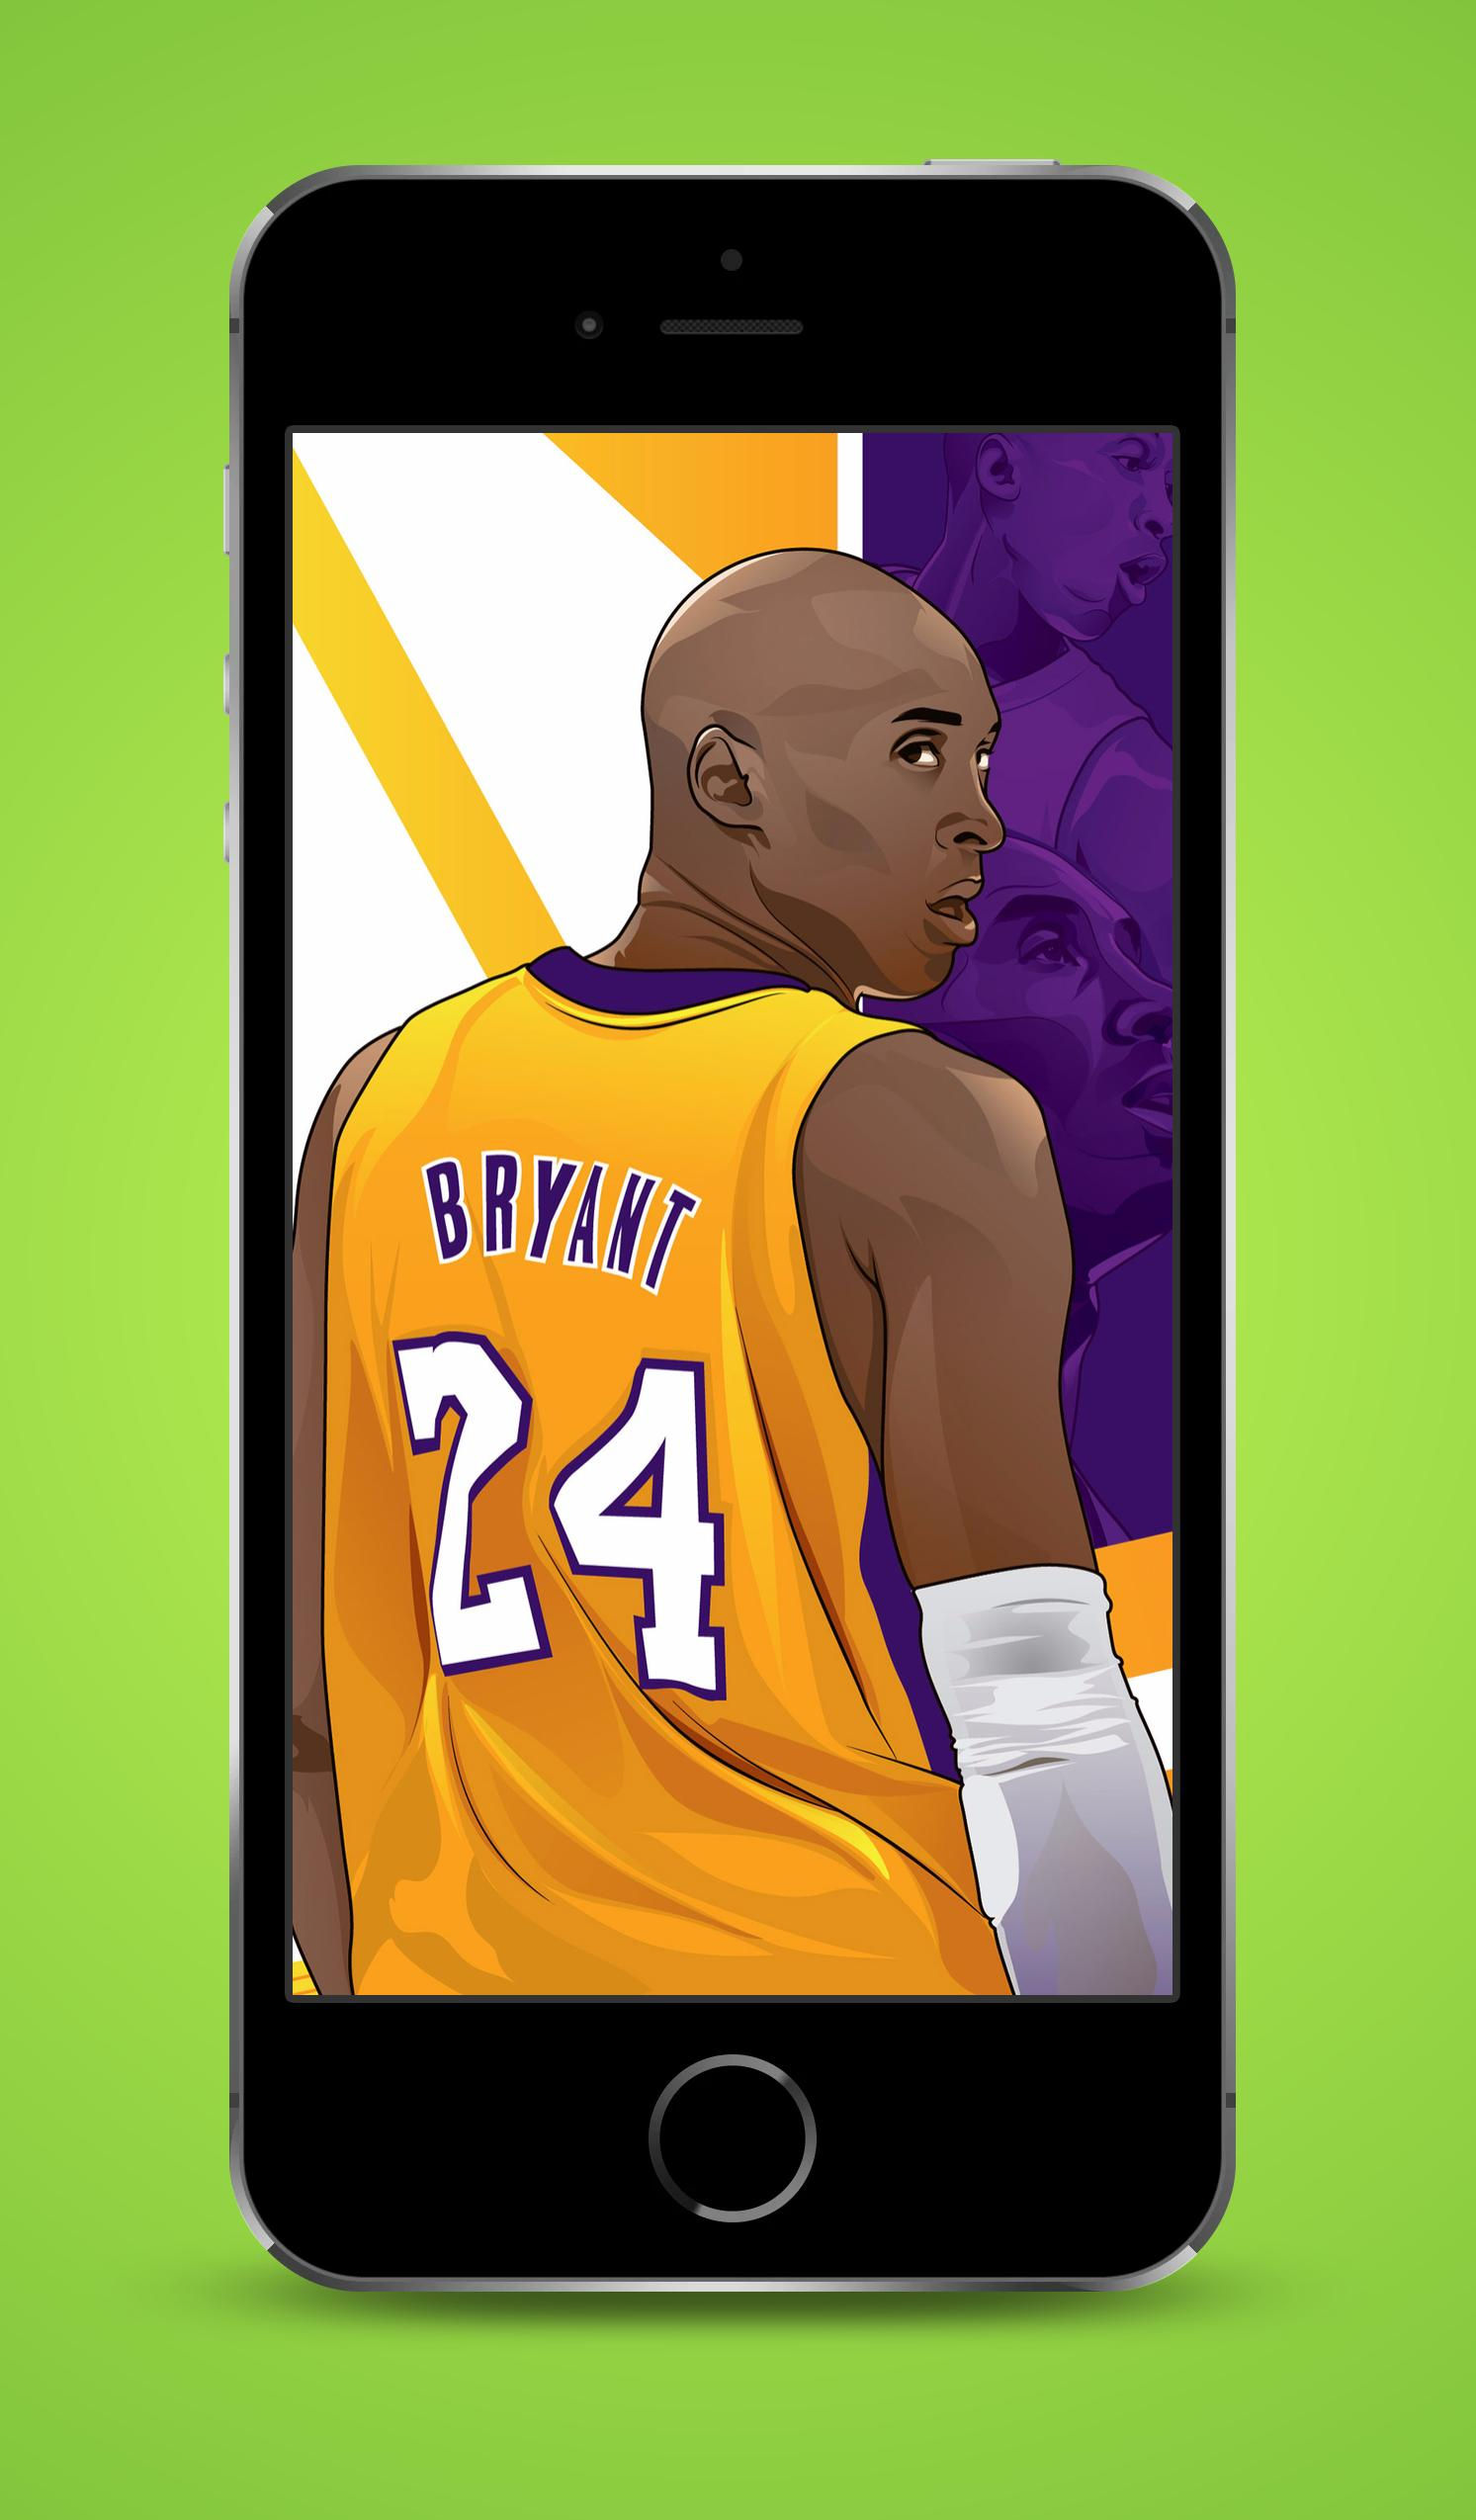 Hd Kobe Bryant Wallpaper For Android Apk Download